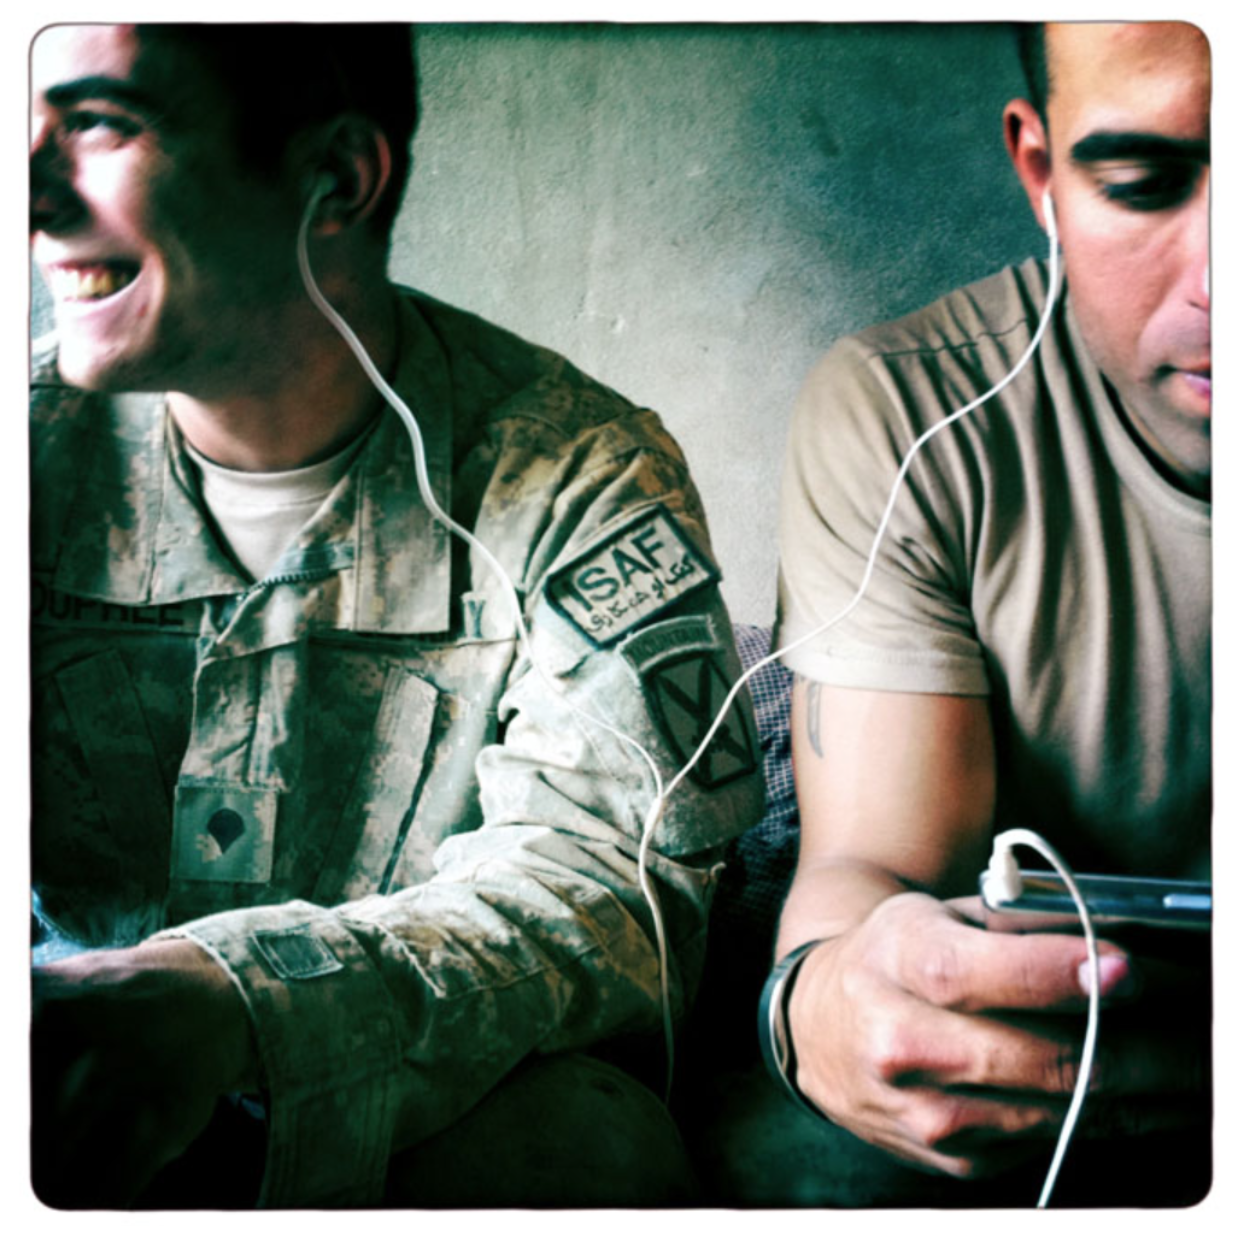 Figure 1: Damon Winter, 'Specialist Christian Dupree and SGT. Santiago Zapata Sharing Earbuds To Listen To Music' from A Grunts Life,